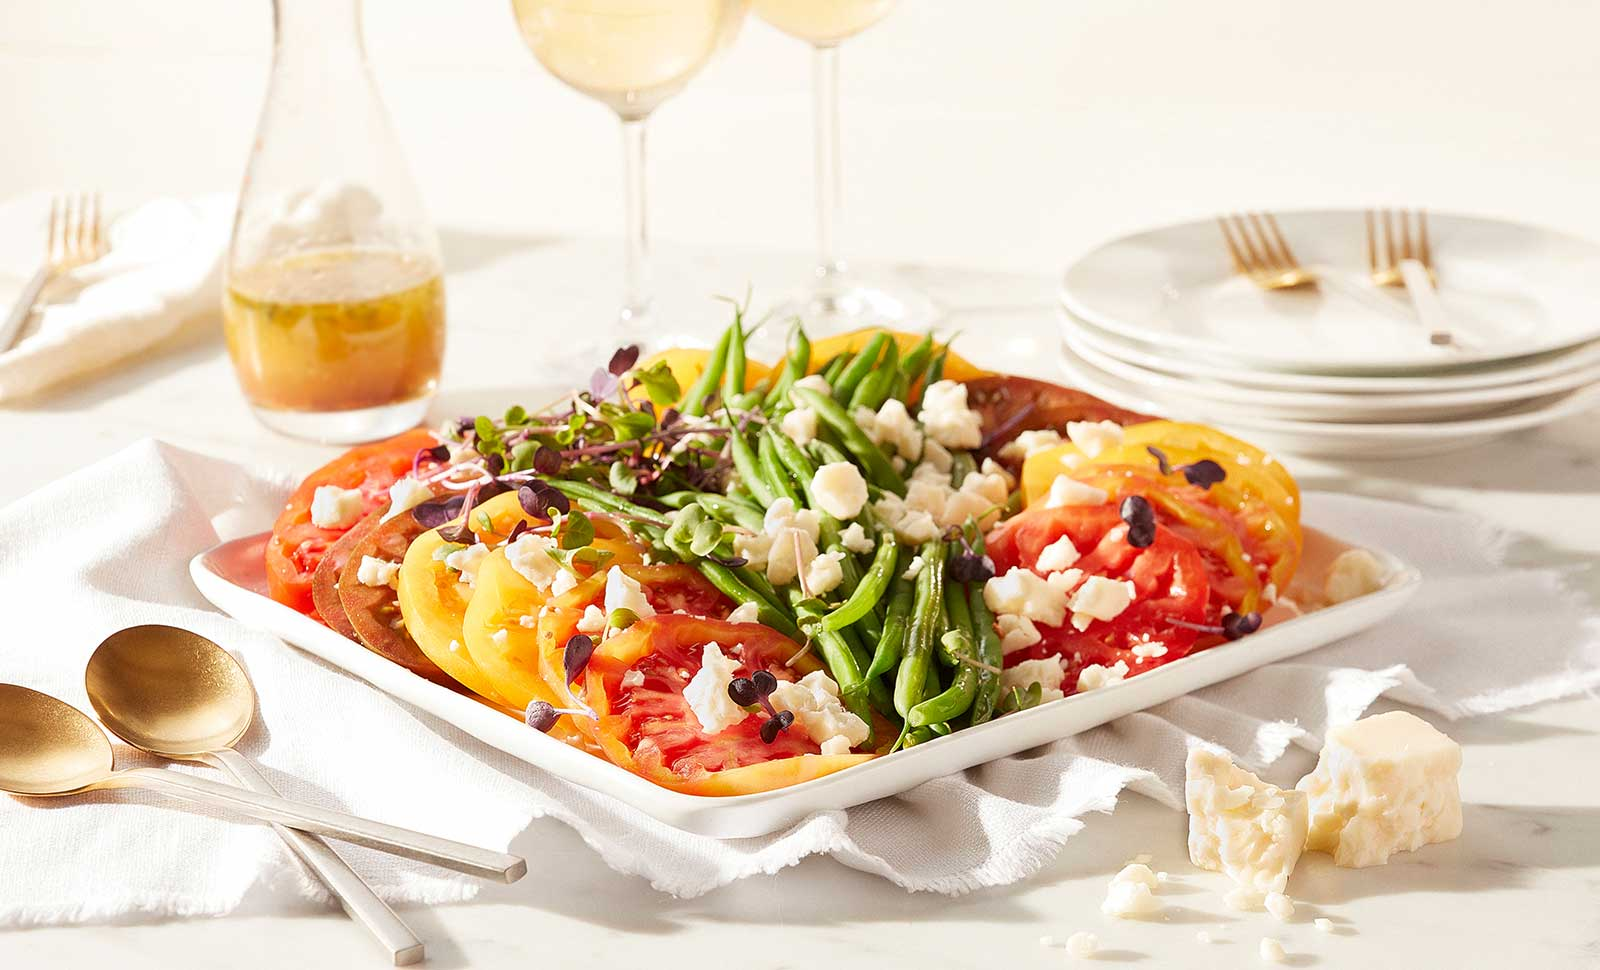 A plate of heirloom tomato and green bean salad.